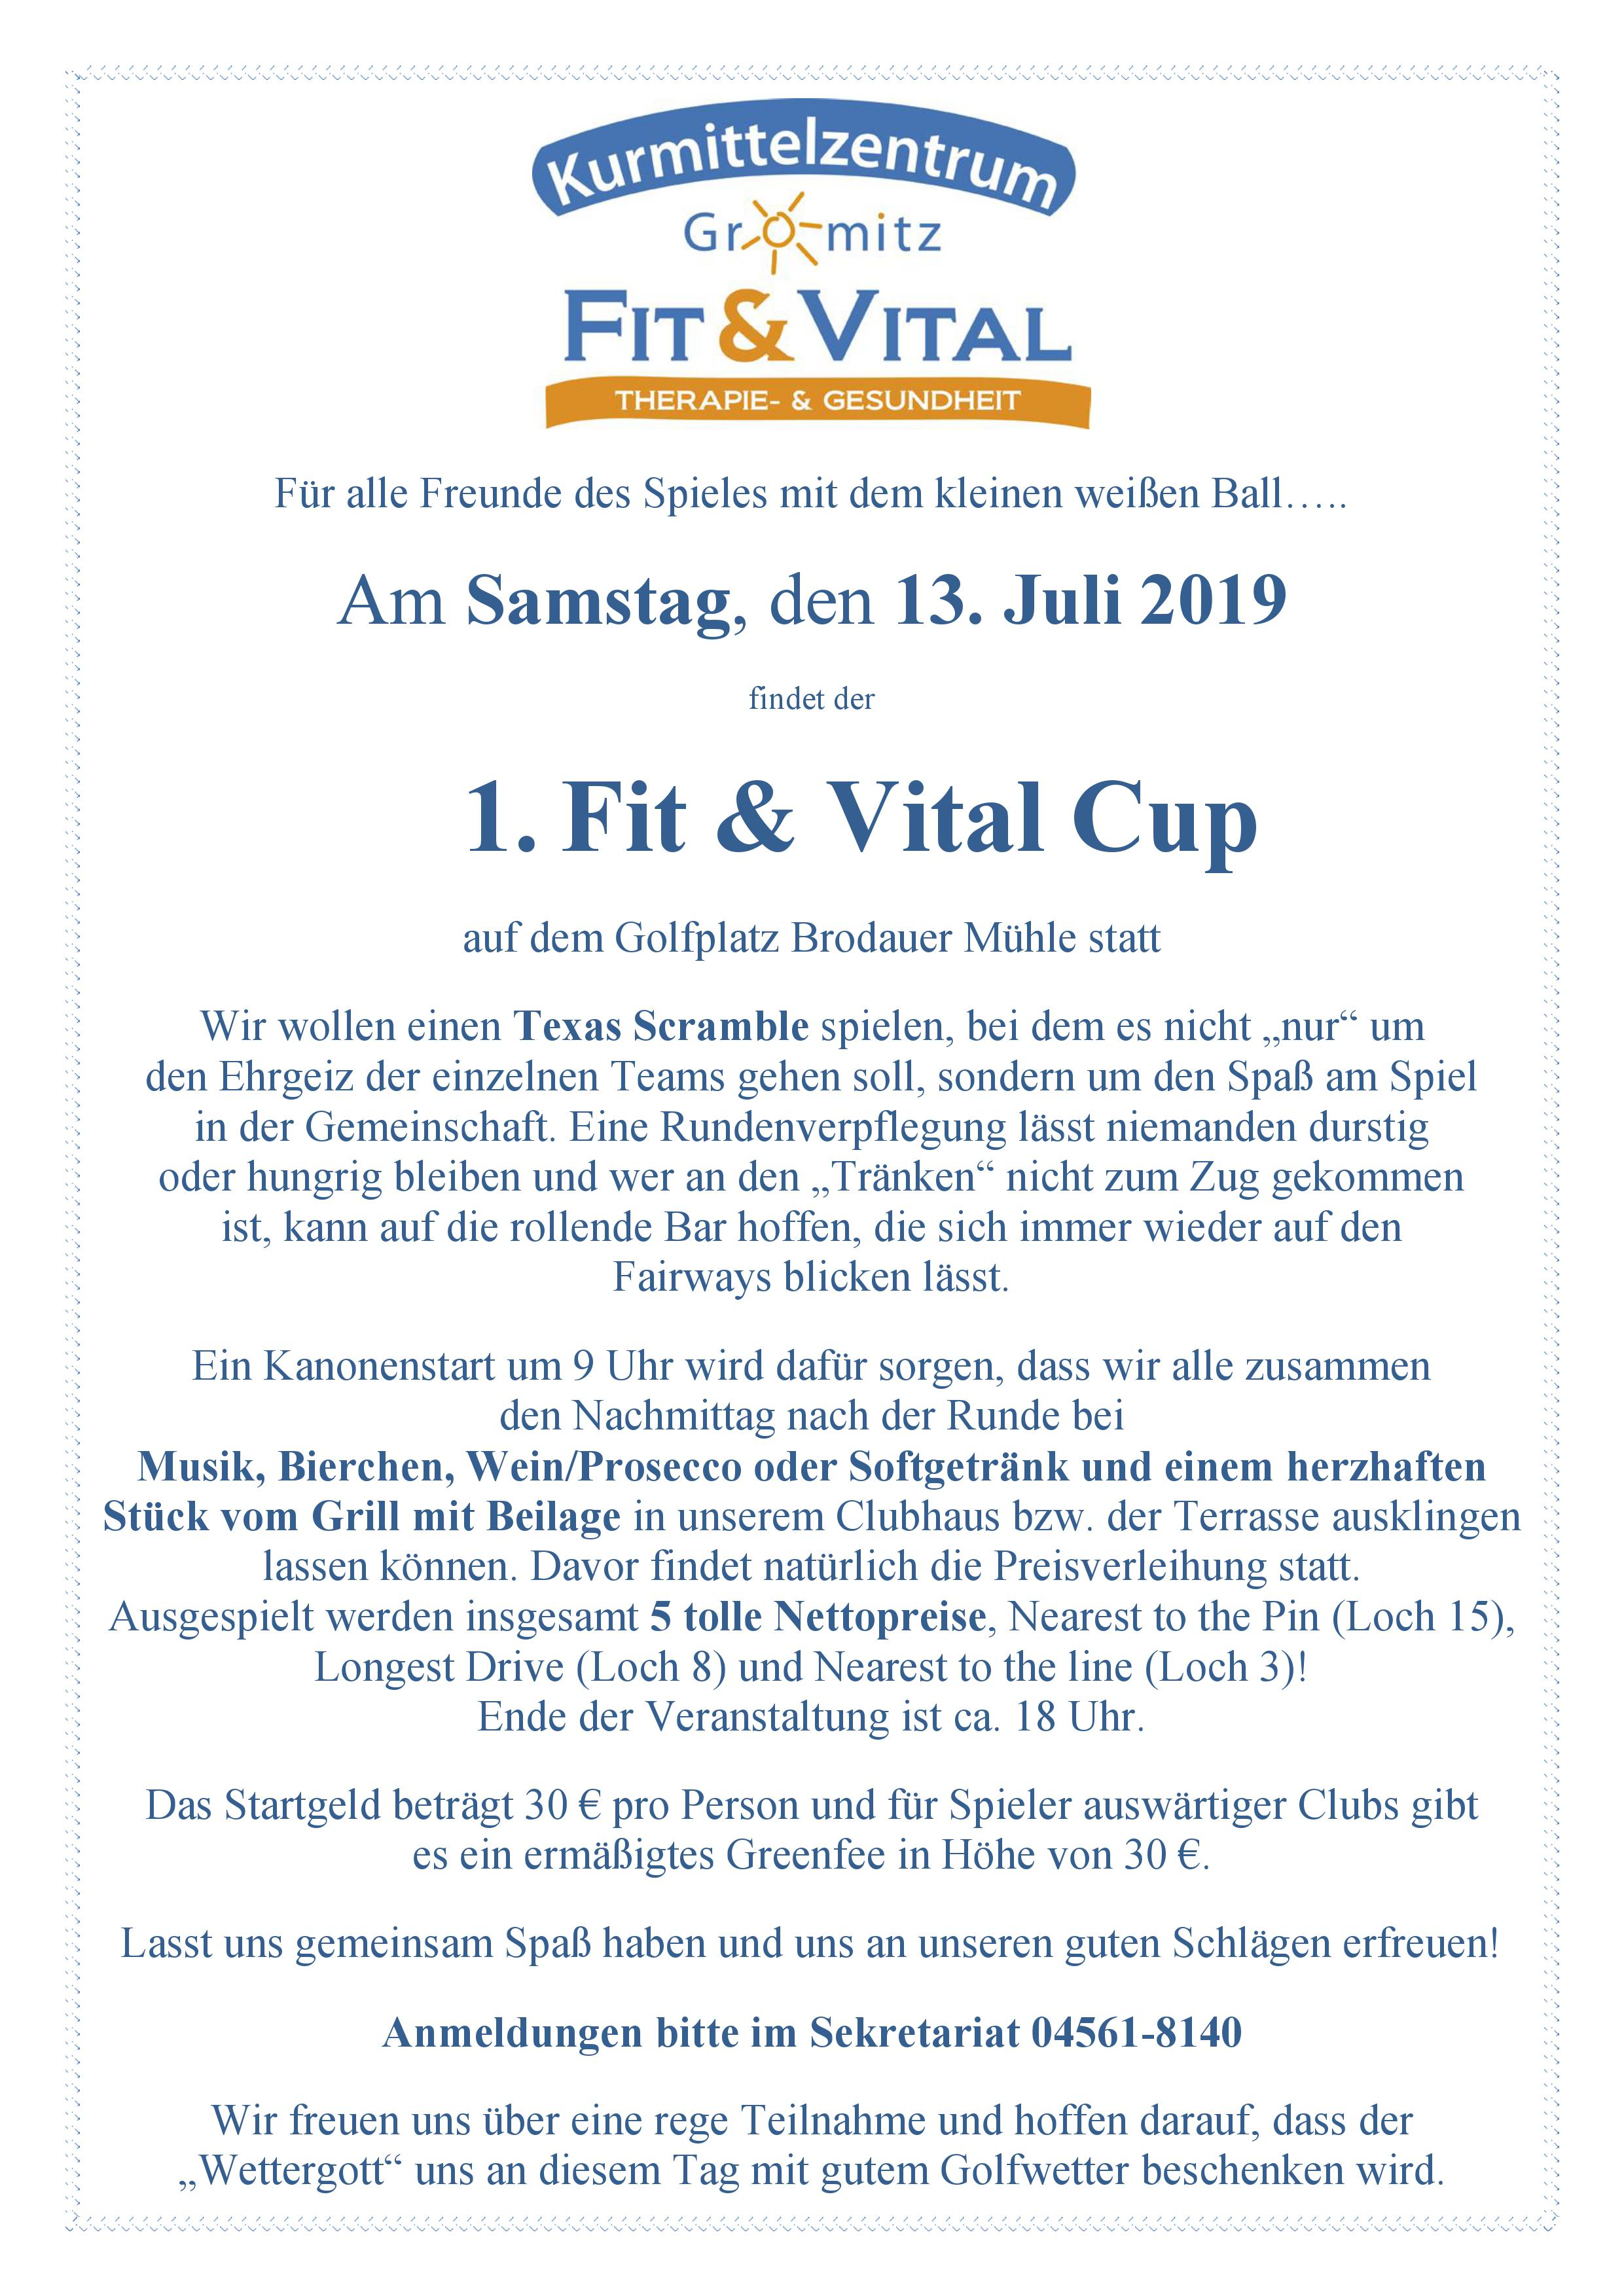 Fit & Vital Cup 2019